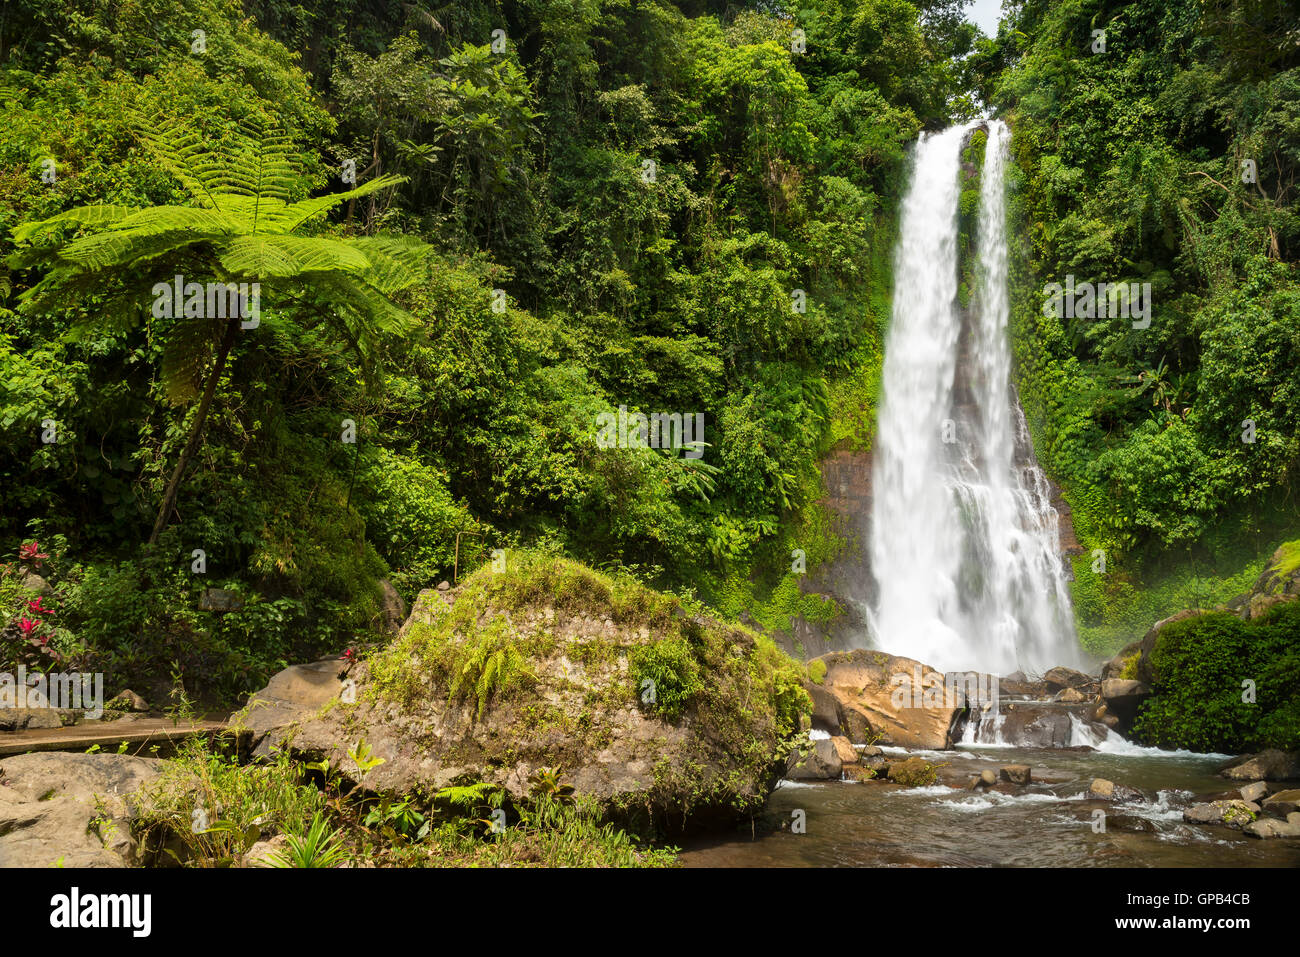 Amazing waterfall Git Git, Bali, Indonesia - Stock Image